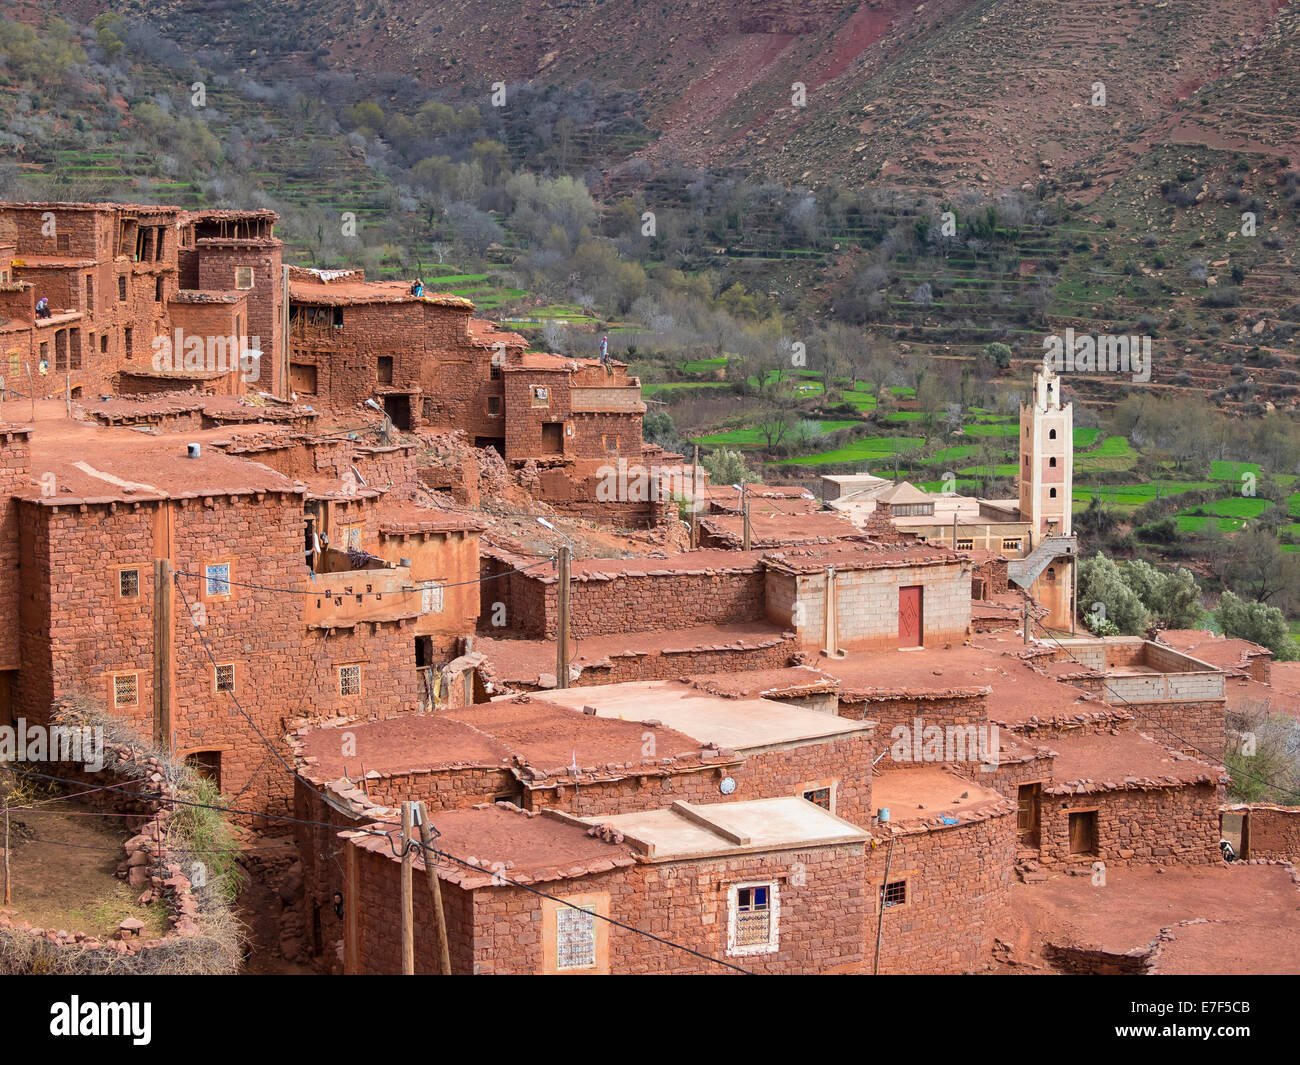 Mud-brick village of Anammer, Ourika Valley, Atlas Mountains, Marrakech-Tensift-Al Haouz, Morocco - Stock Image